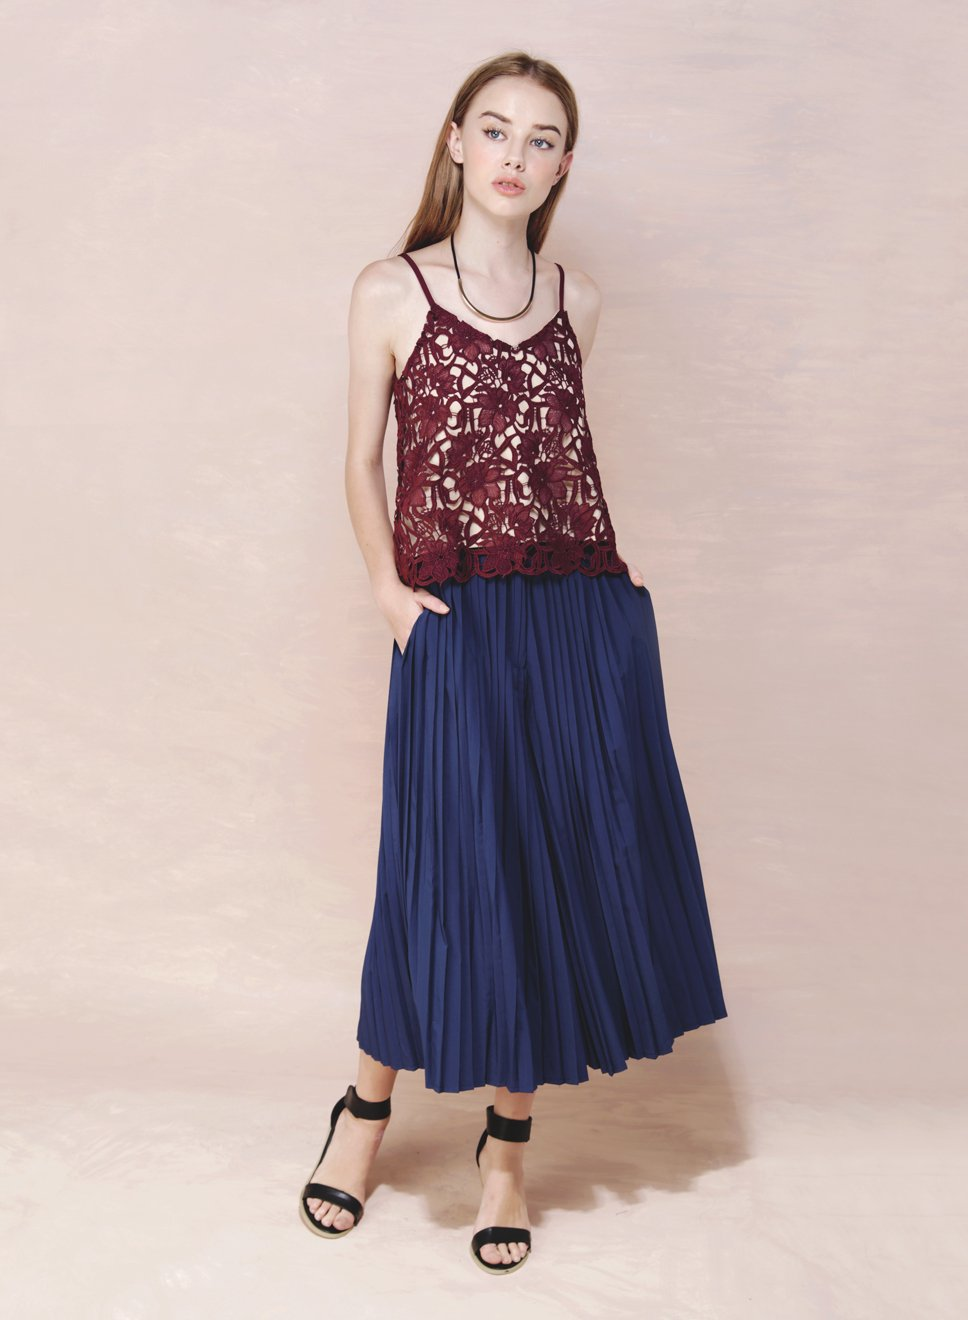 ELEMENT Floral Crochet Top (Wine) at $ 20.50 only sold at And Well Dressed Online Fashion Store Singapore